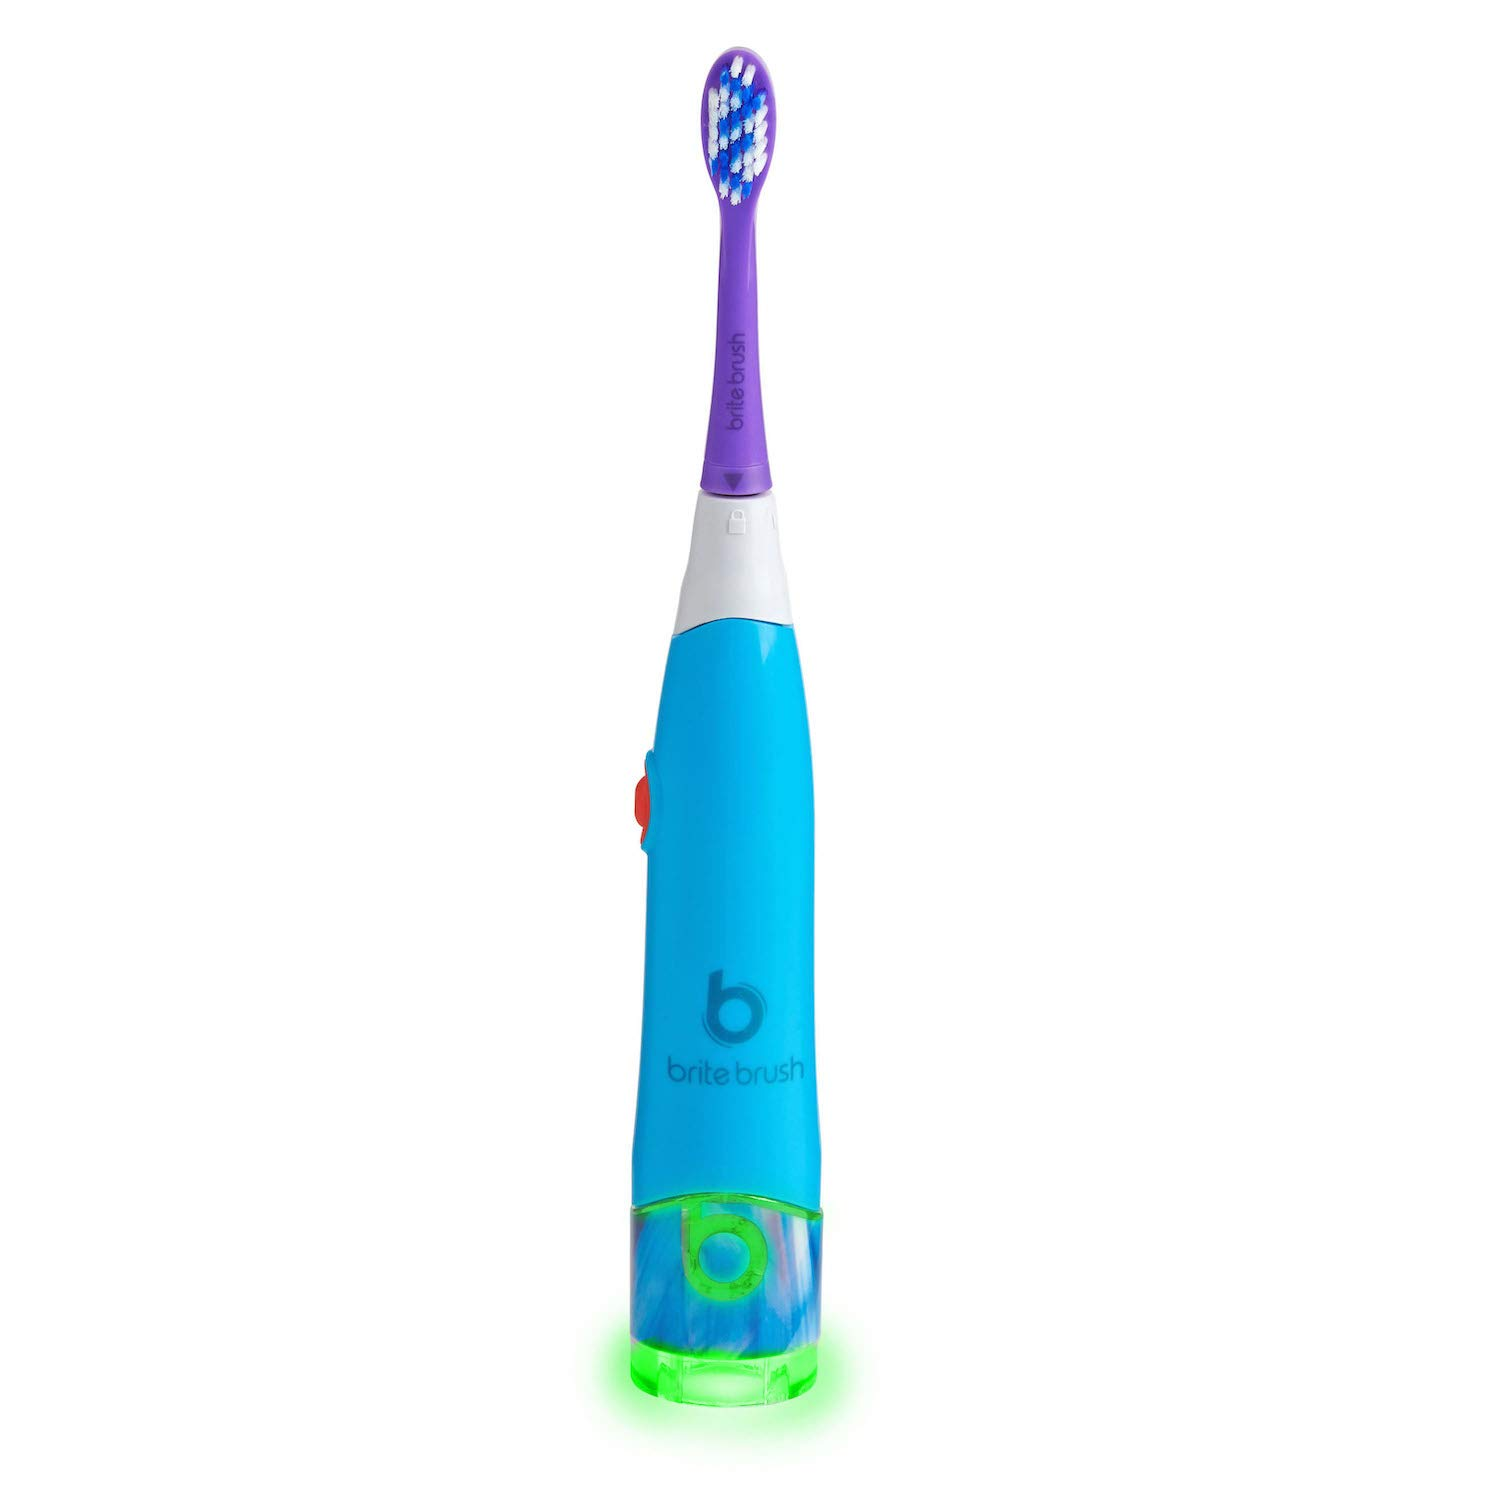 BriteBrush - GameBrush - The Interactive Smart Kids Toothbrush, 1 Count